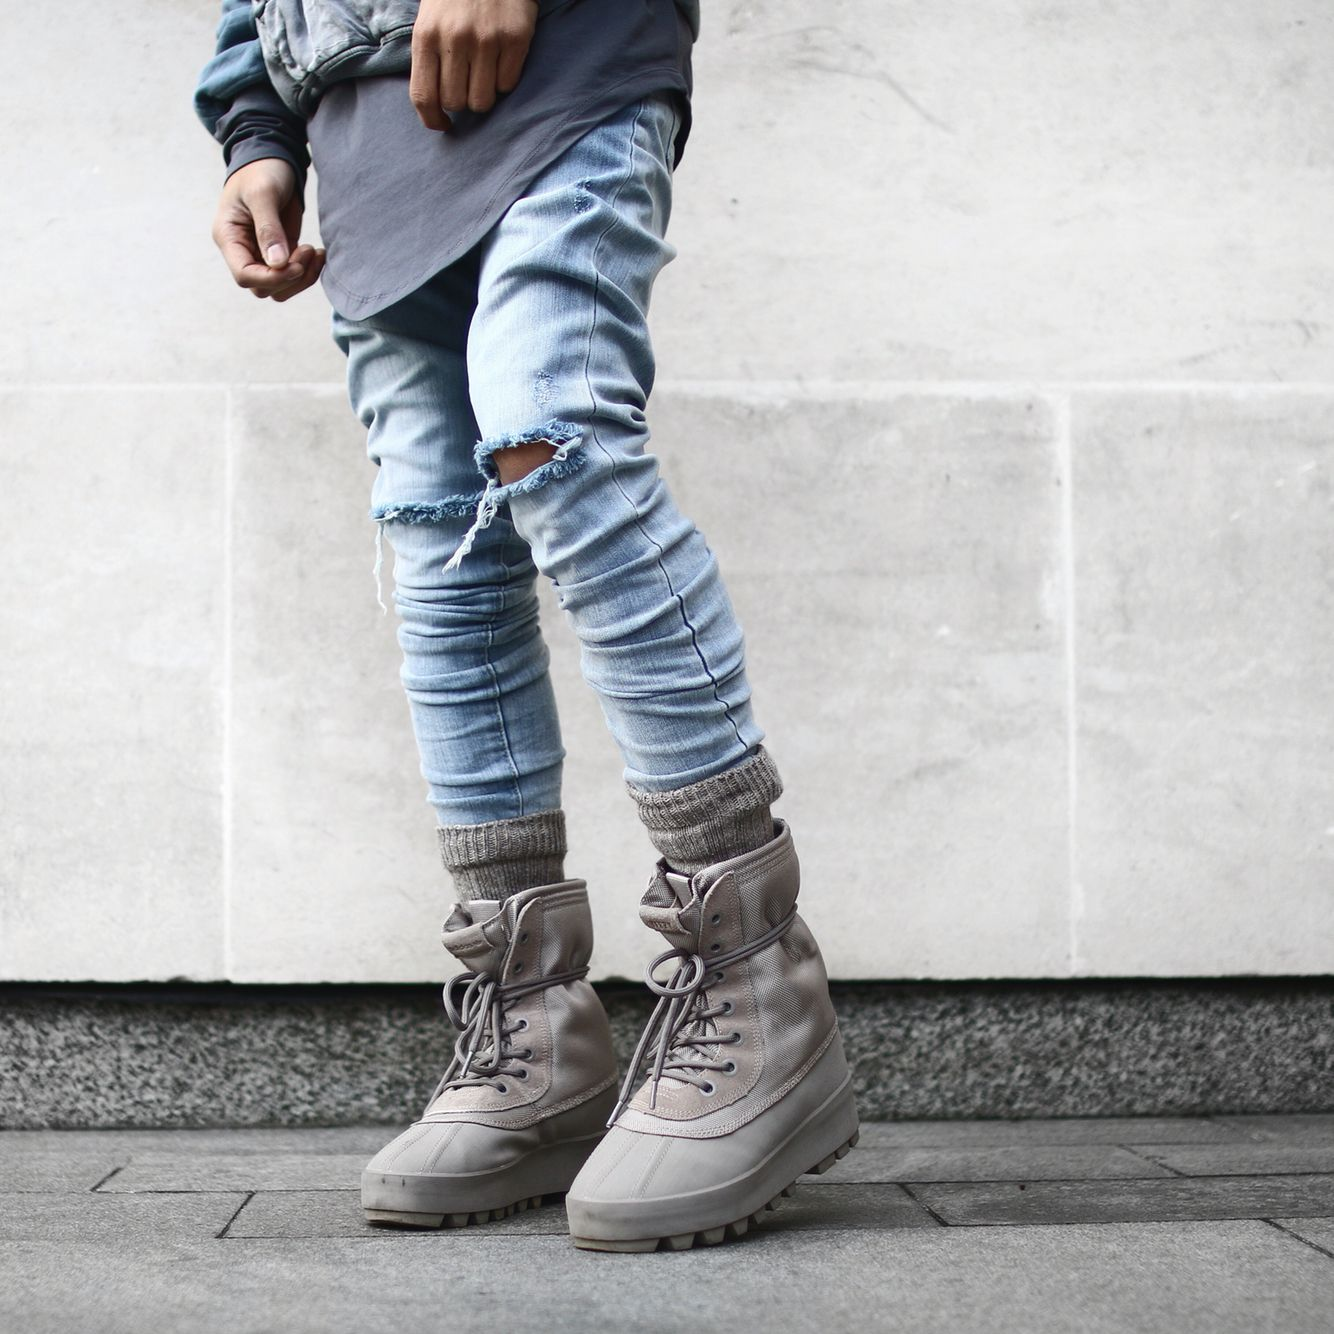 Yeezy 950 | street style | Pinterest | Yeezy Menu0026#39;s fashion and Fashion